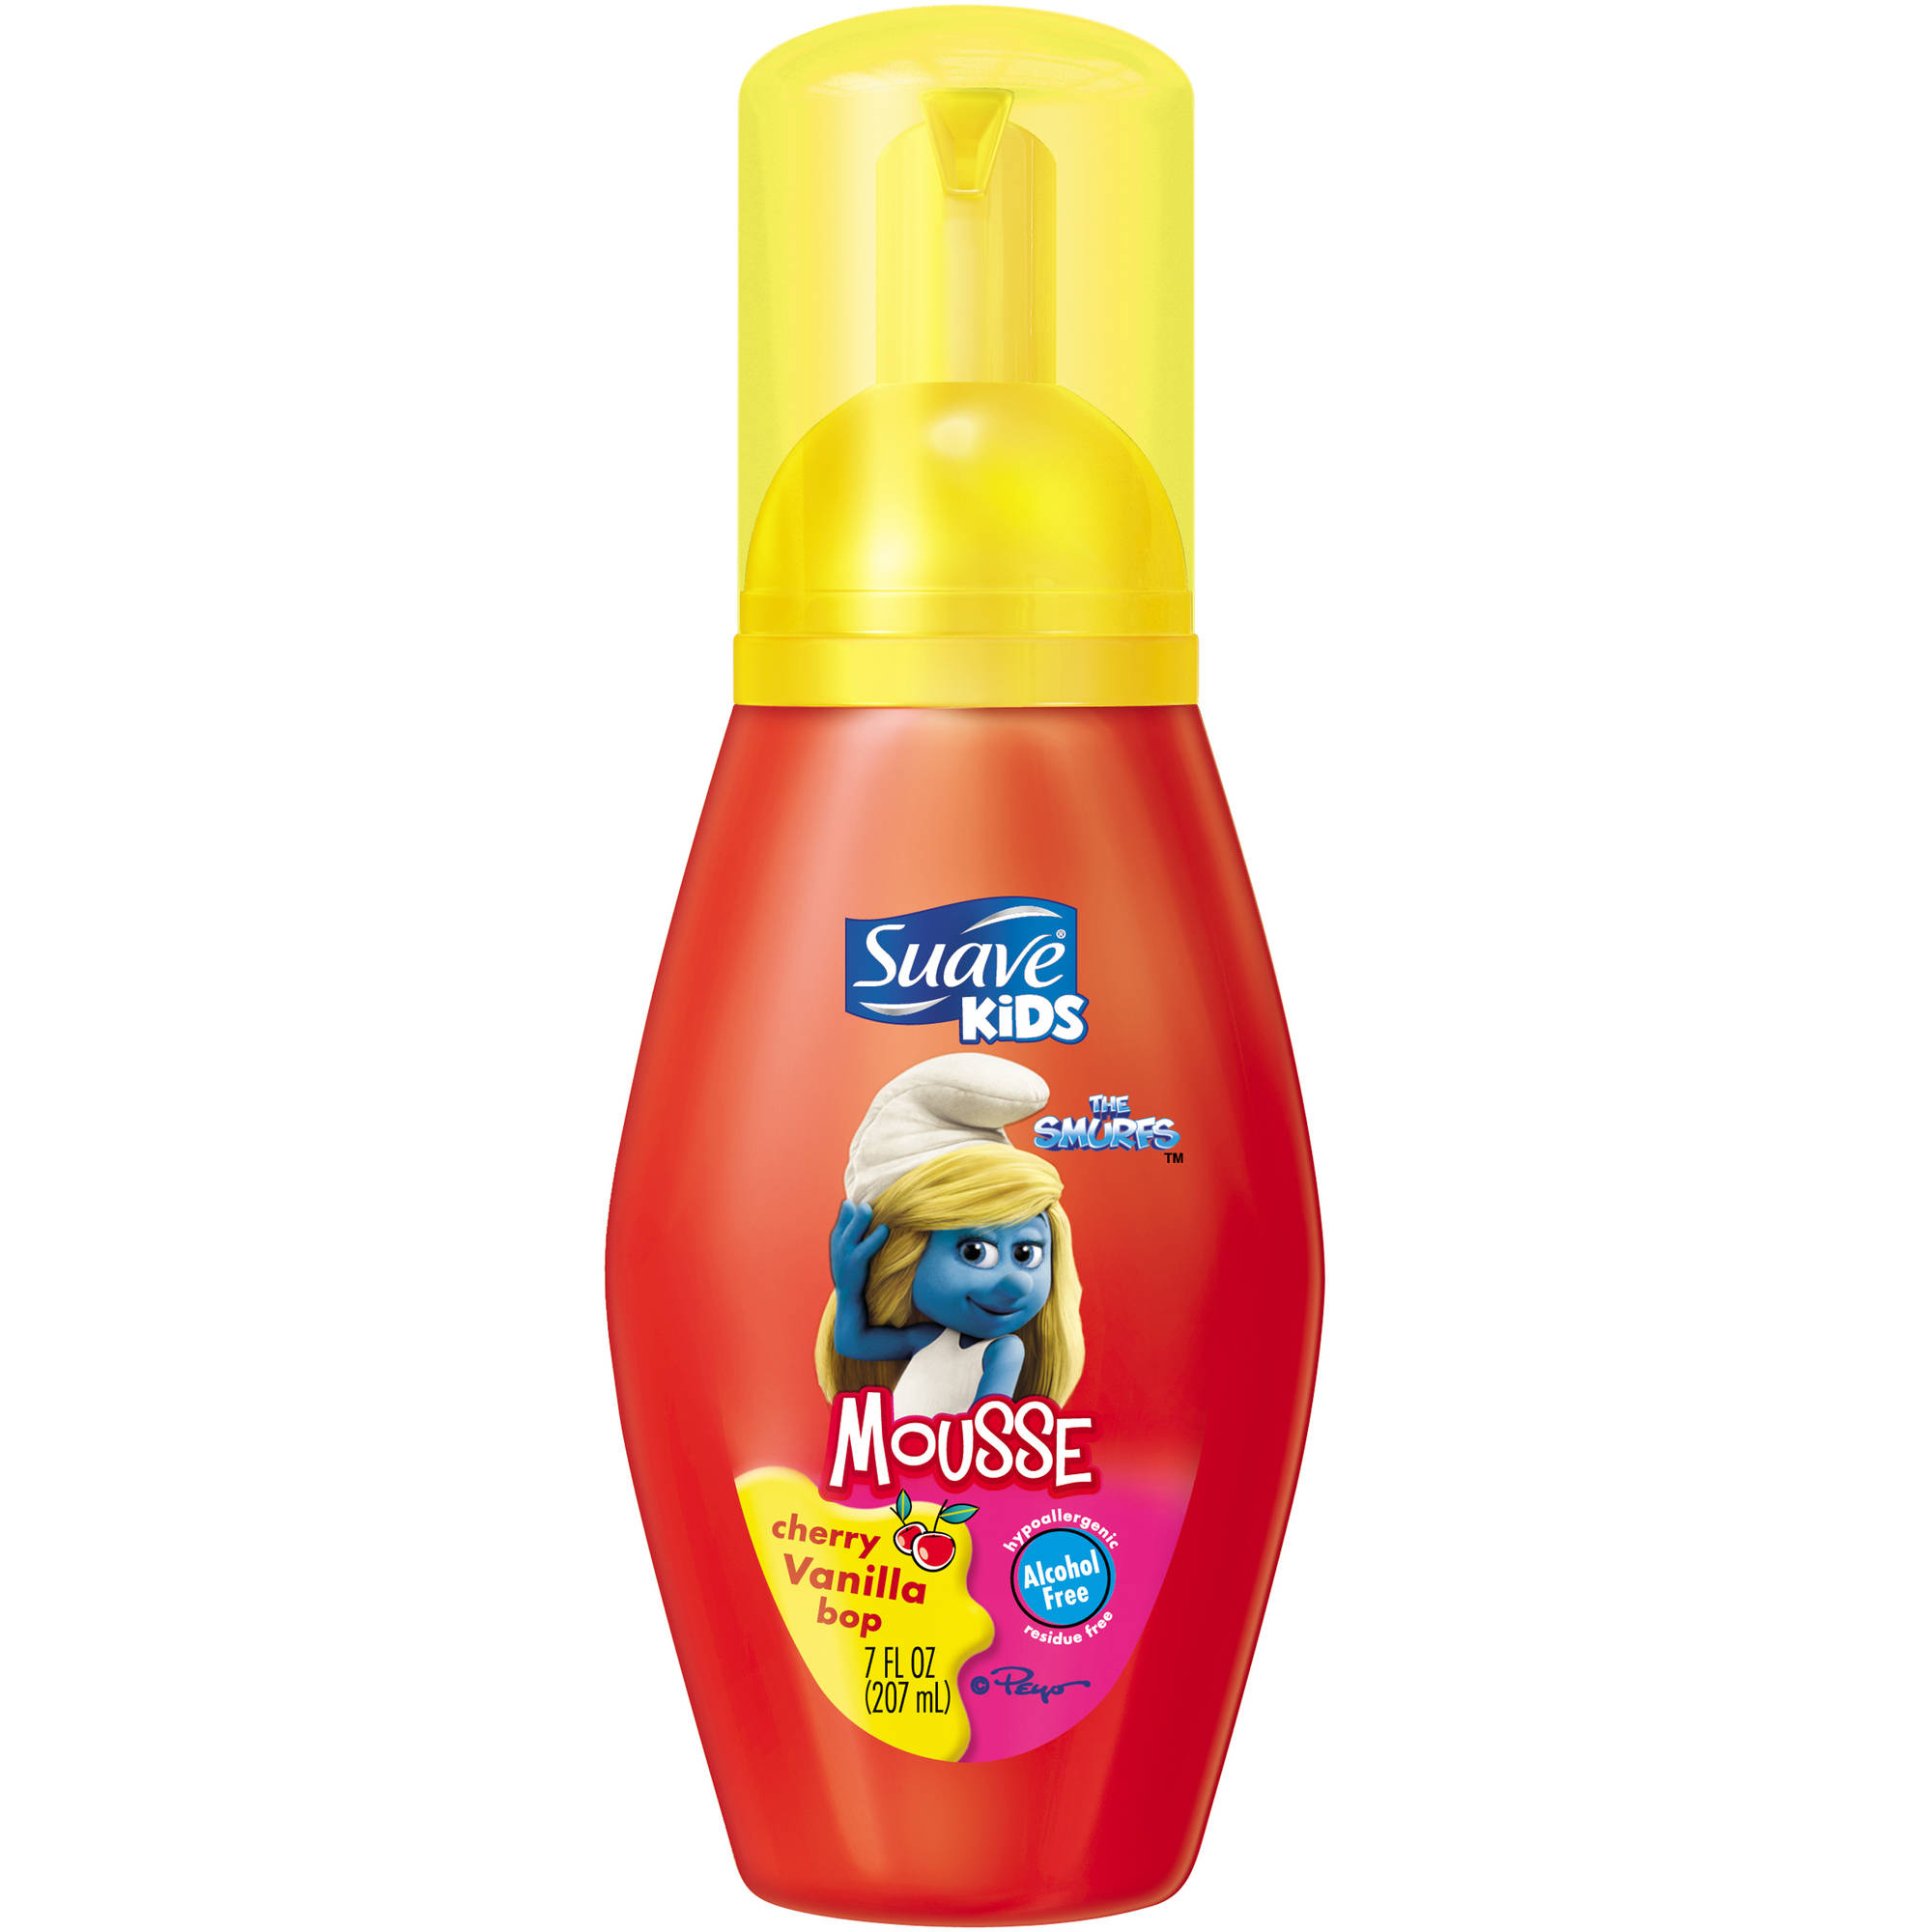 Suave Kids Cherry Vanilla Bop Mousse, 7 fl oz